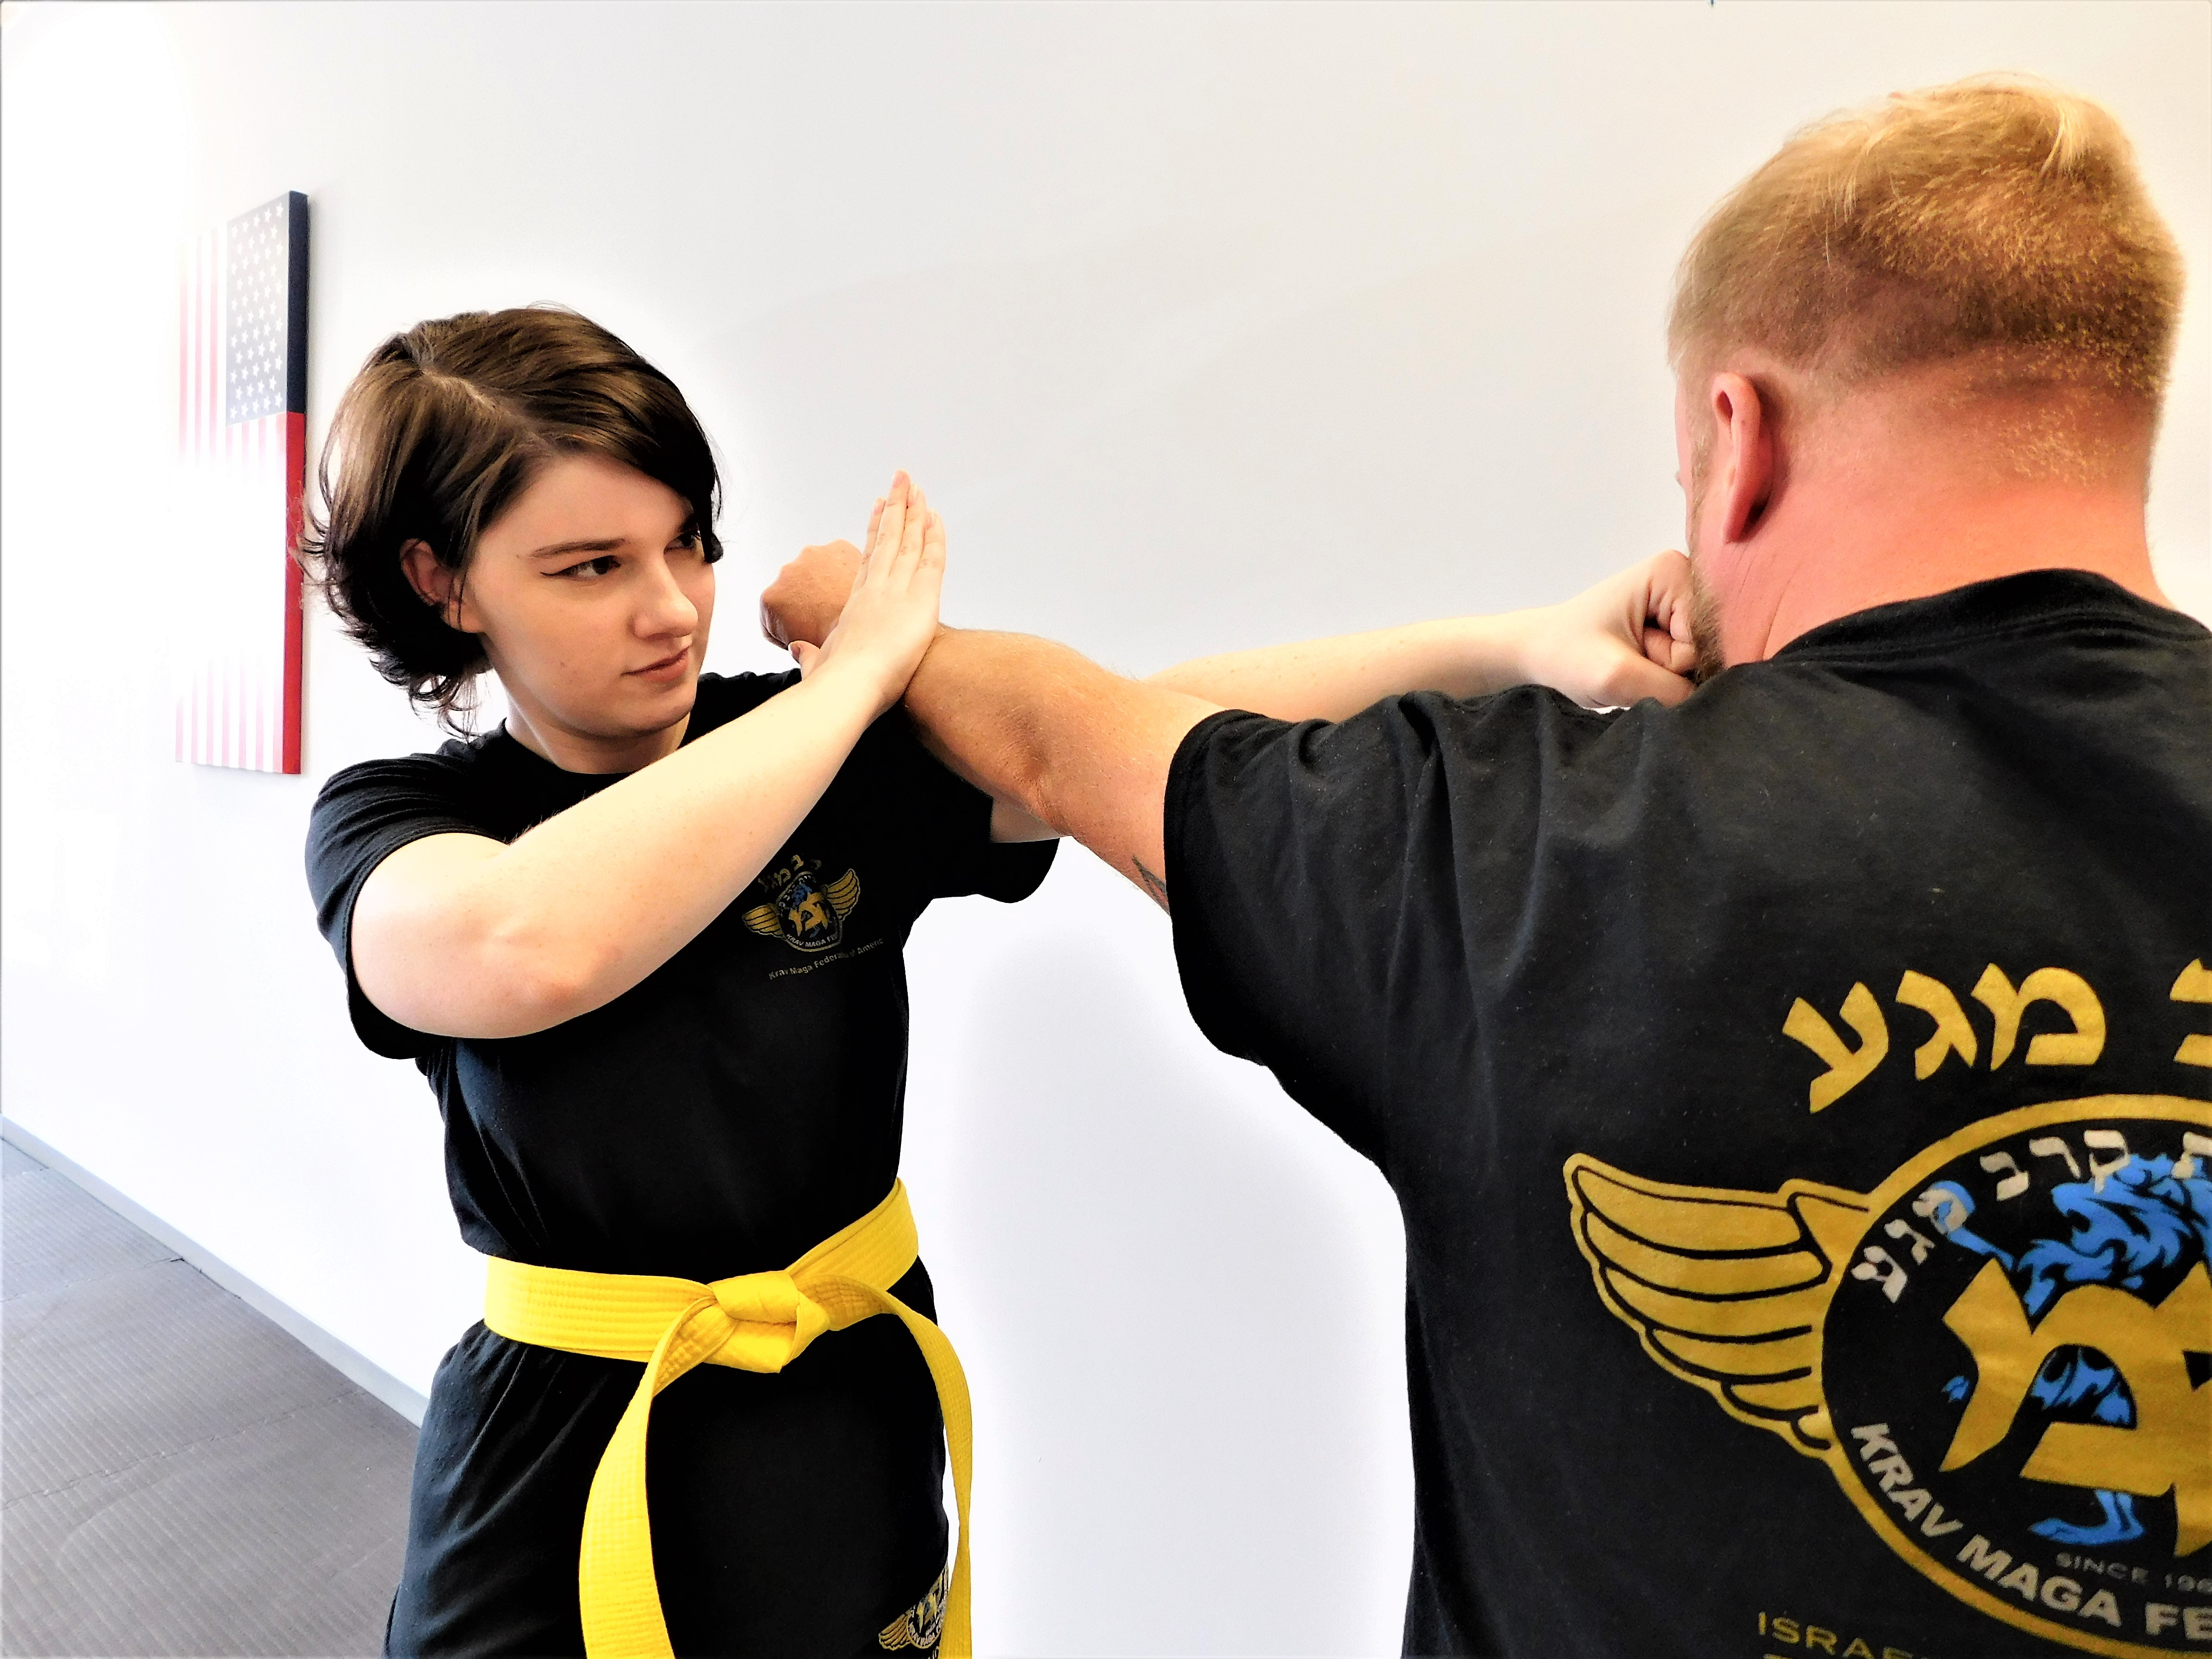 So why Krav Maga    - Performance Krav Maga